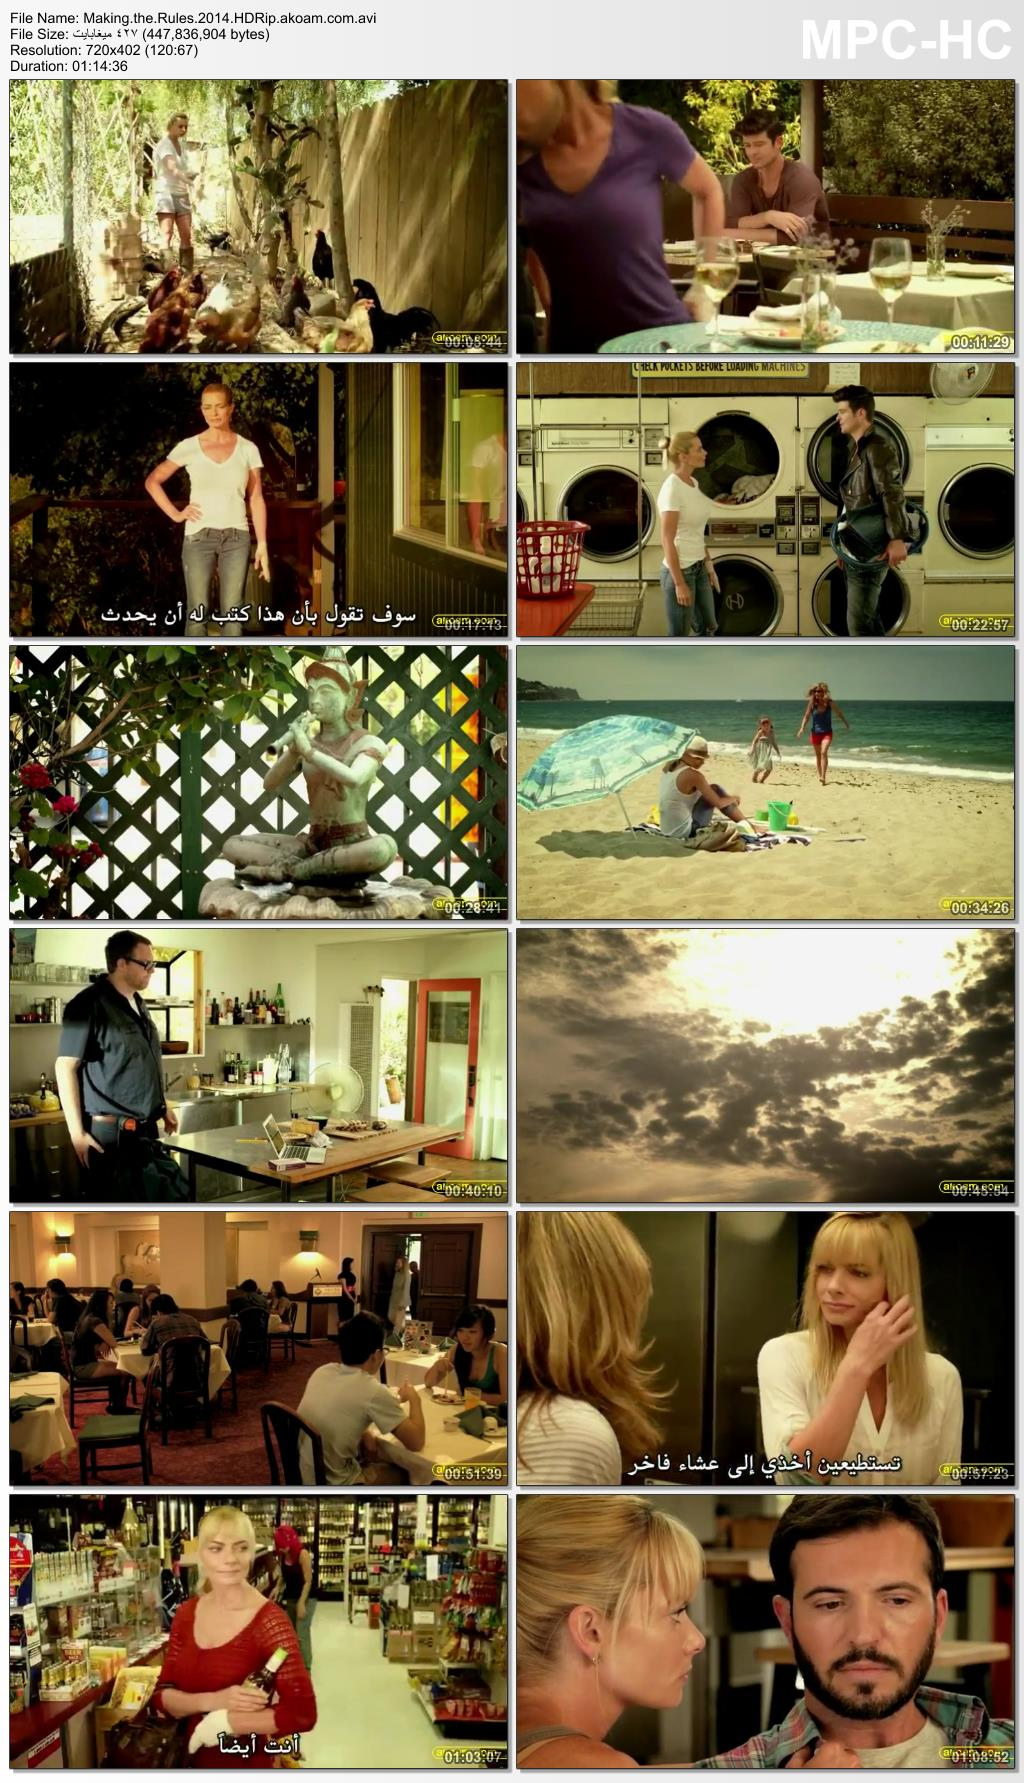 Making,والرومانسية,الدراما,Making the rules 2014,Abby in the Summer (2014),Jaime Pressly,Robin Thicke,Tygh Runyan